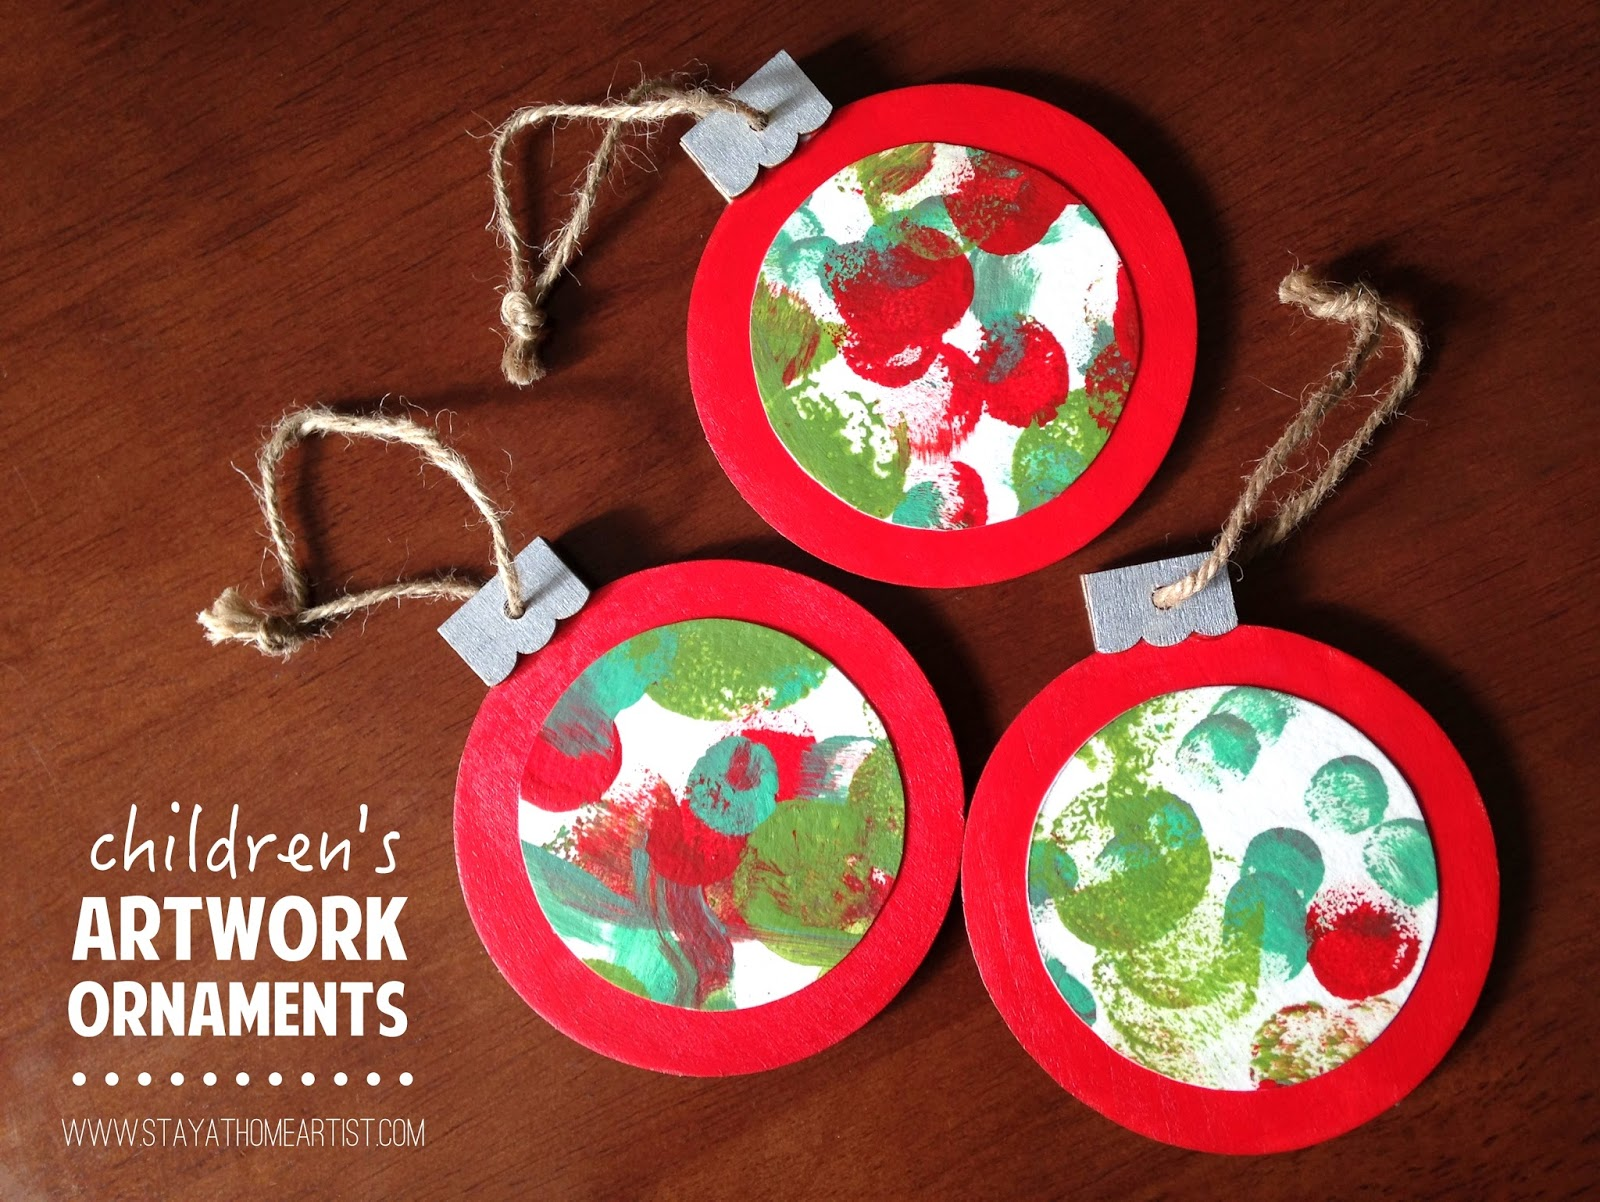 childrens artwork ornaments